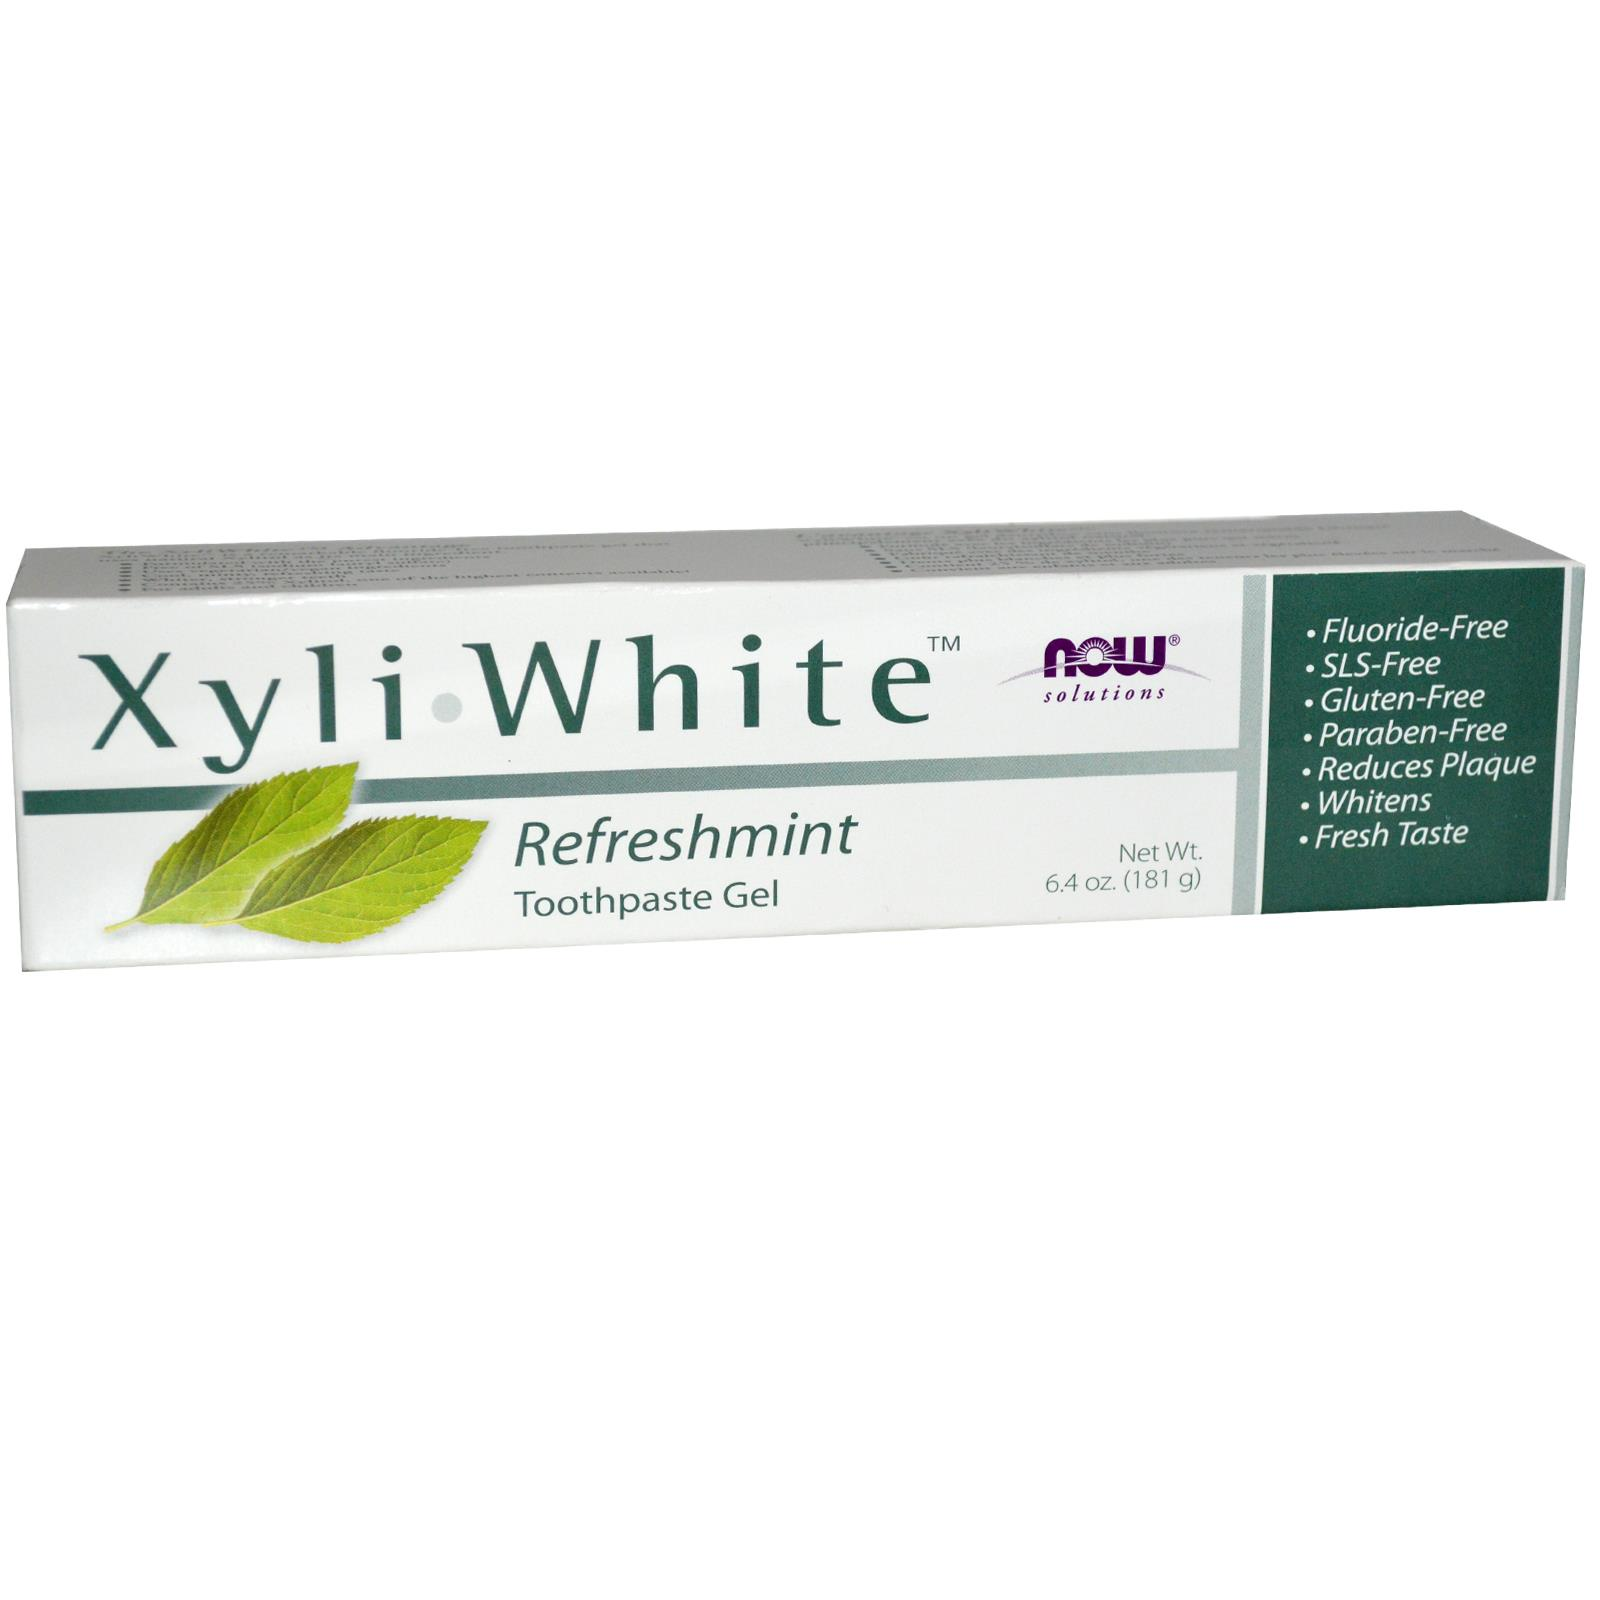 NOW Foods Xyliwhite Toothpaste Gel Review